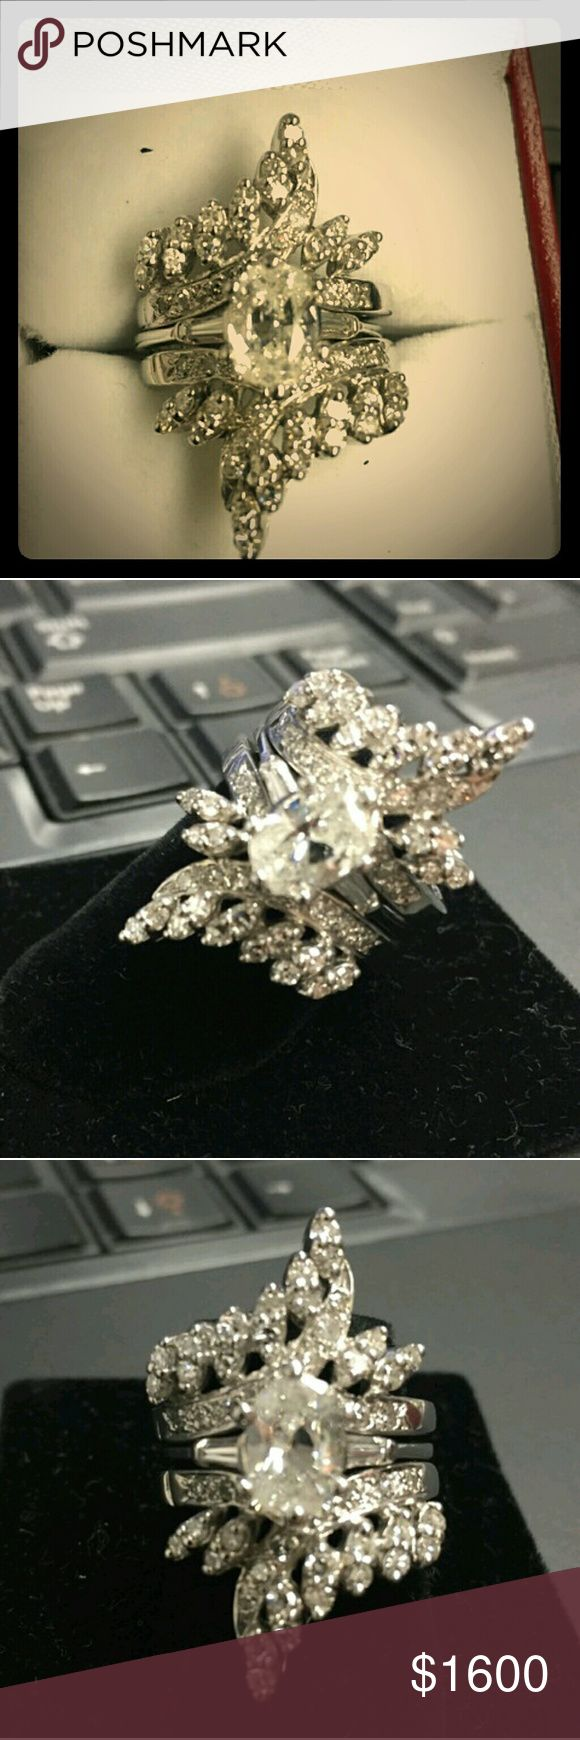 3.50ct Real diamond ring lover's only 3pcs set sz6 3.50ct Real diamond ring lover's only 3pcs set sz6 Will take less on PaayPallll Only Swap to same price or better  This is is used. Color grade is unknown  It was sold to my ago Jackie The Cat consignment shop. Please make overs via paaypall only prices are firm on posh. All diamonds are tested by my jewellers will pass as authentic diamond guaranteed or your money back... You also get for a limted time a $50 gift card at outback steak…